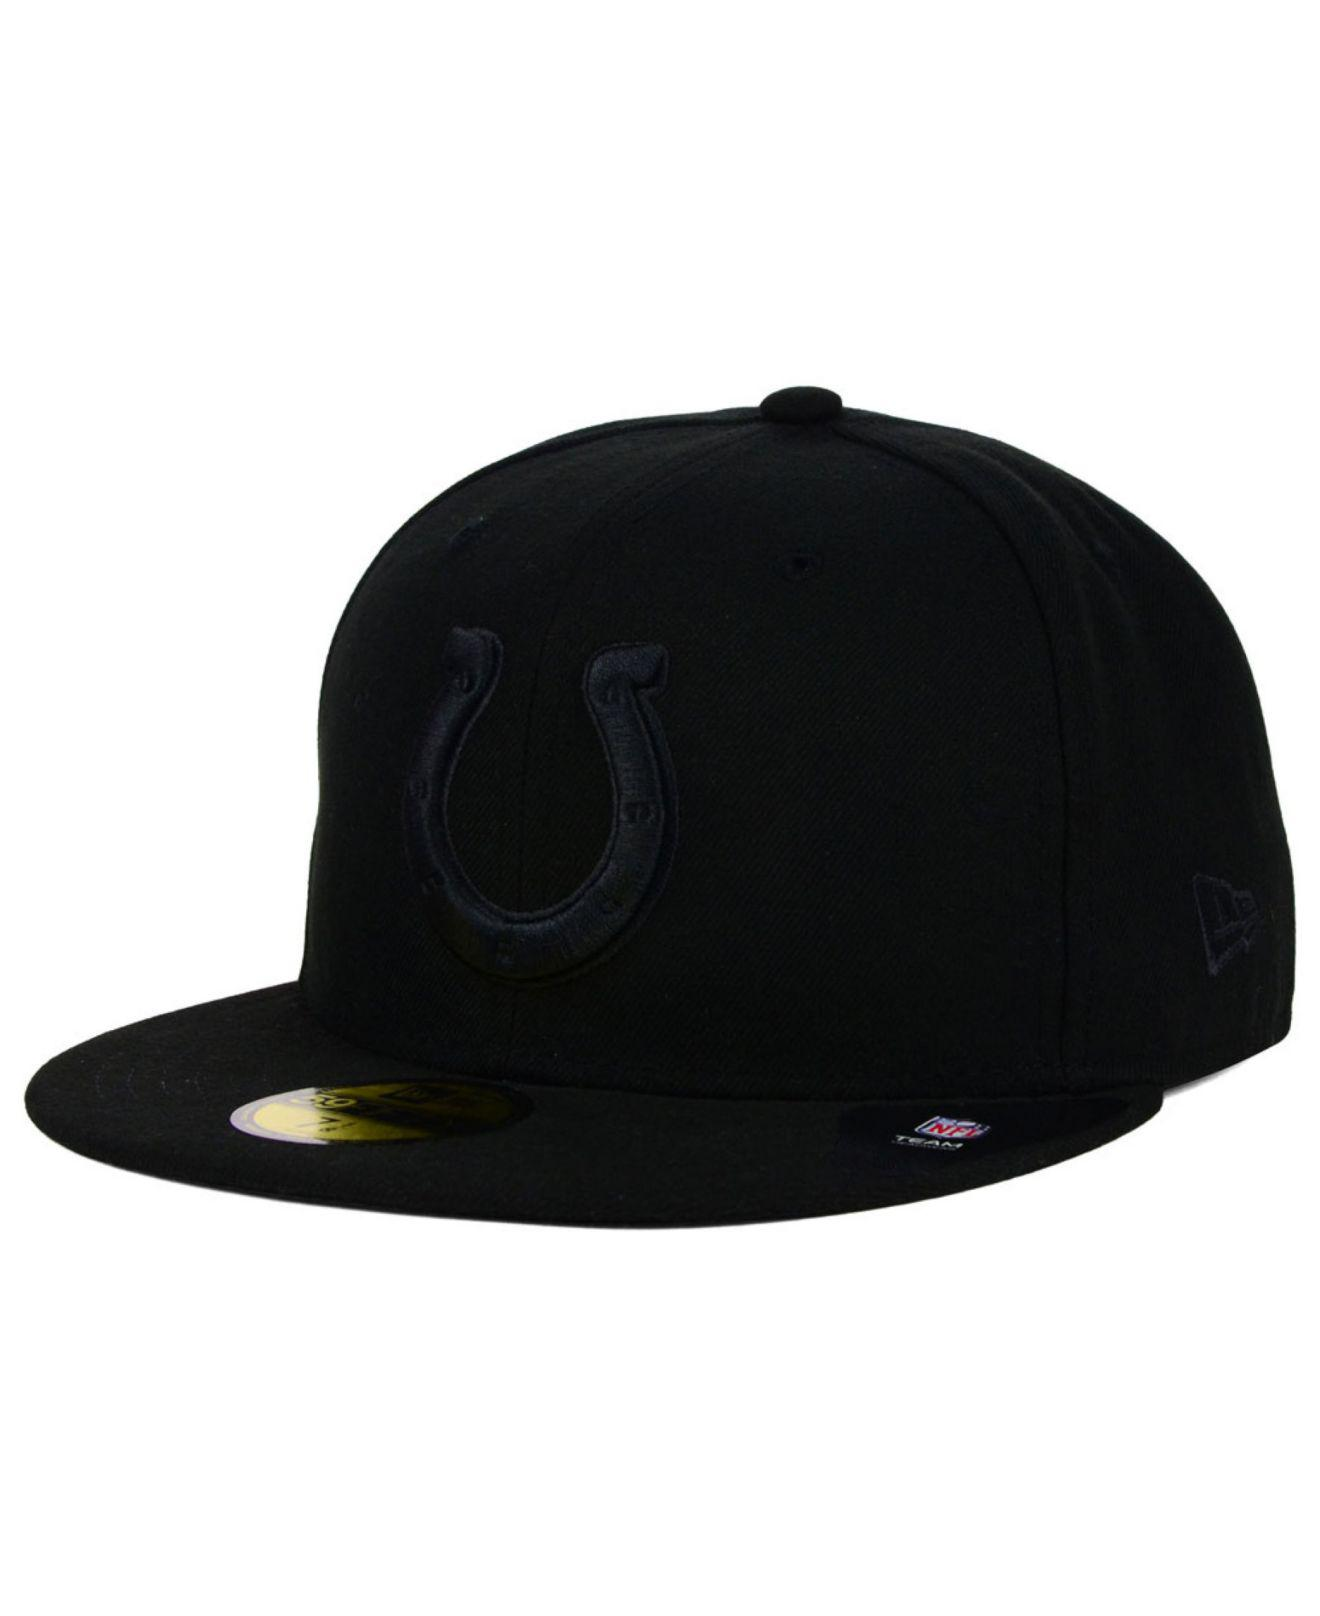 KTZ - Indianapolis Colts Black On Black 59fifty Cap for Men - Lyst. View  fullscreen 135dcda15